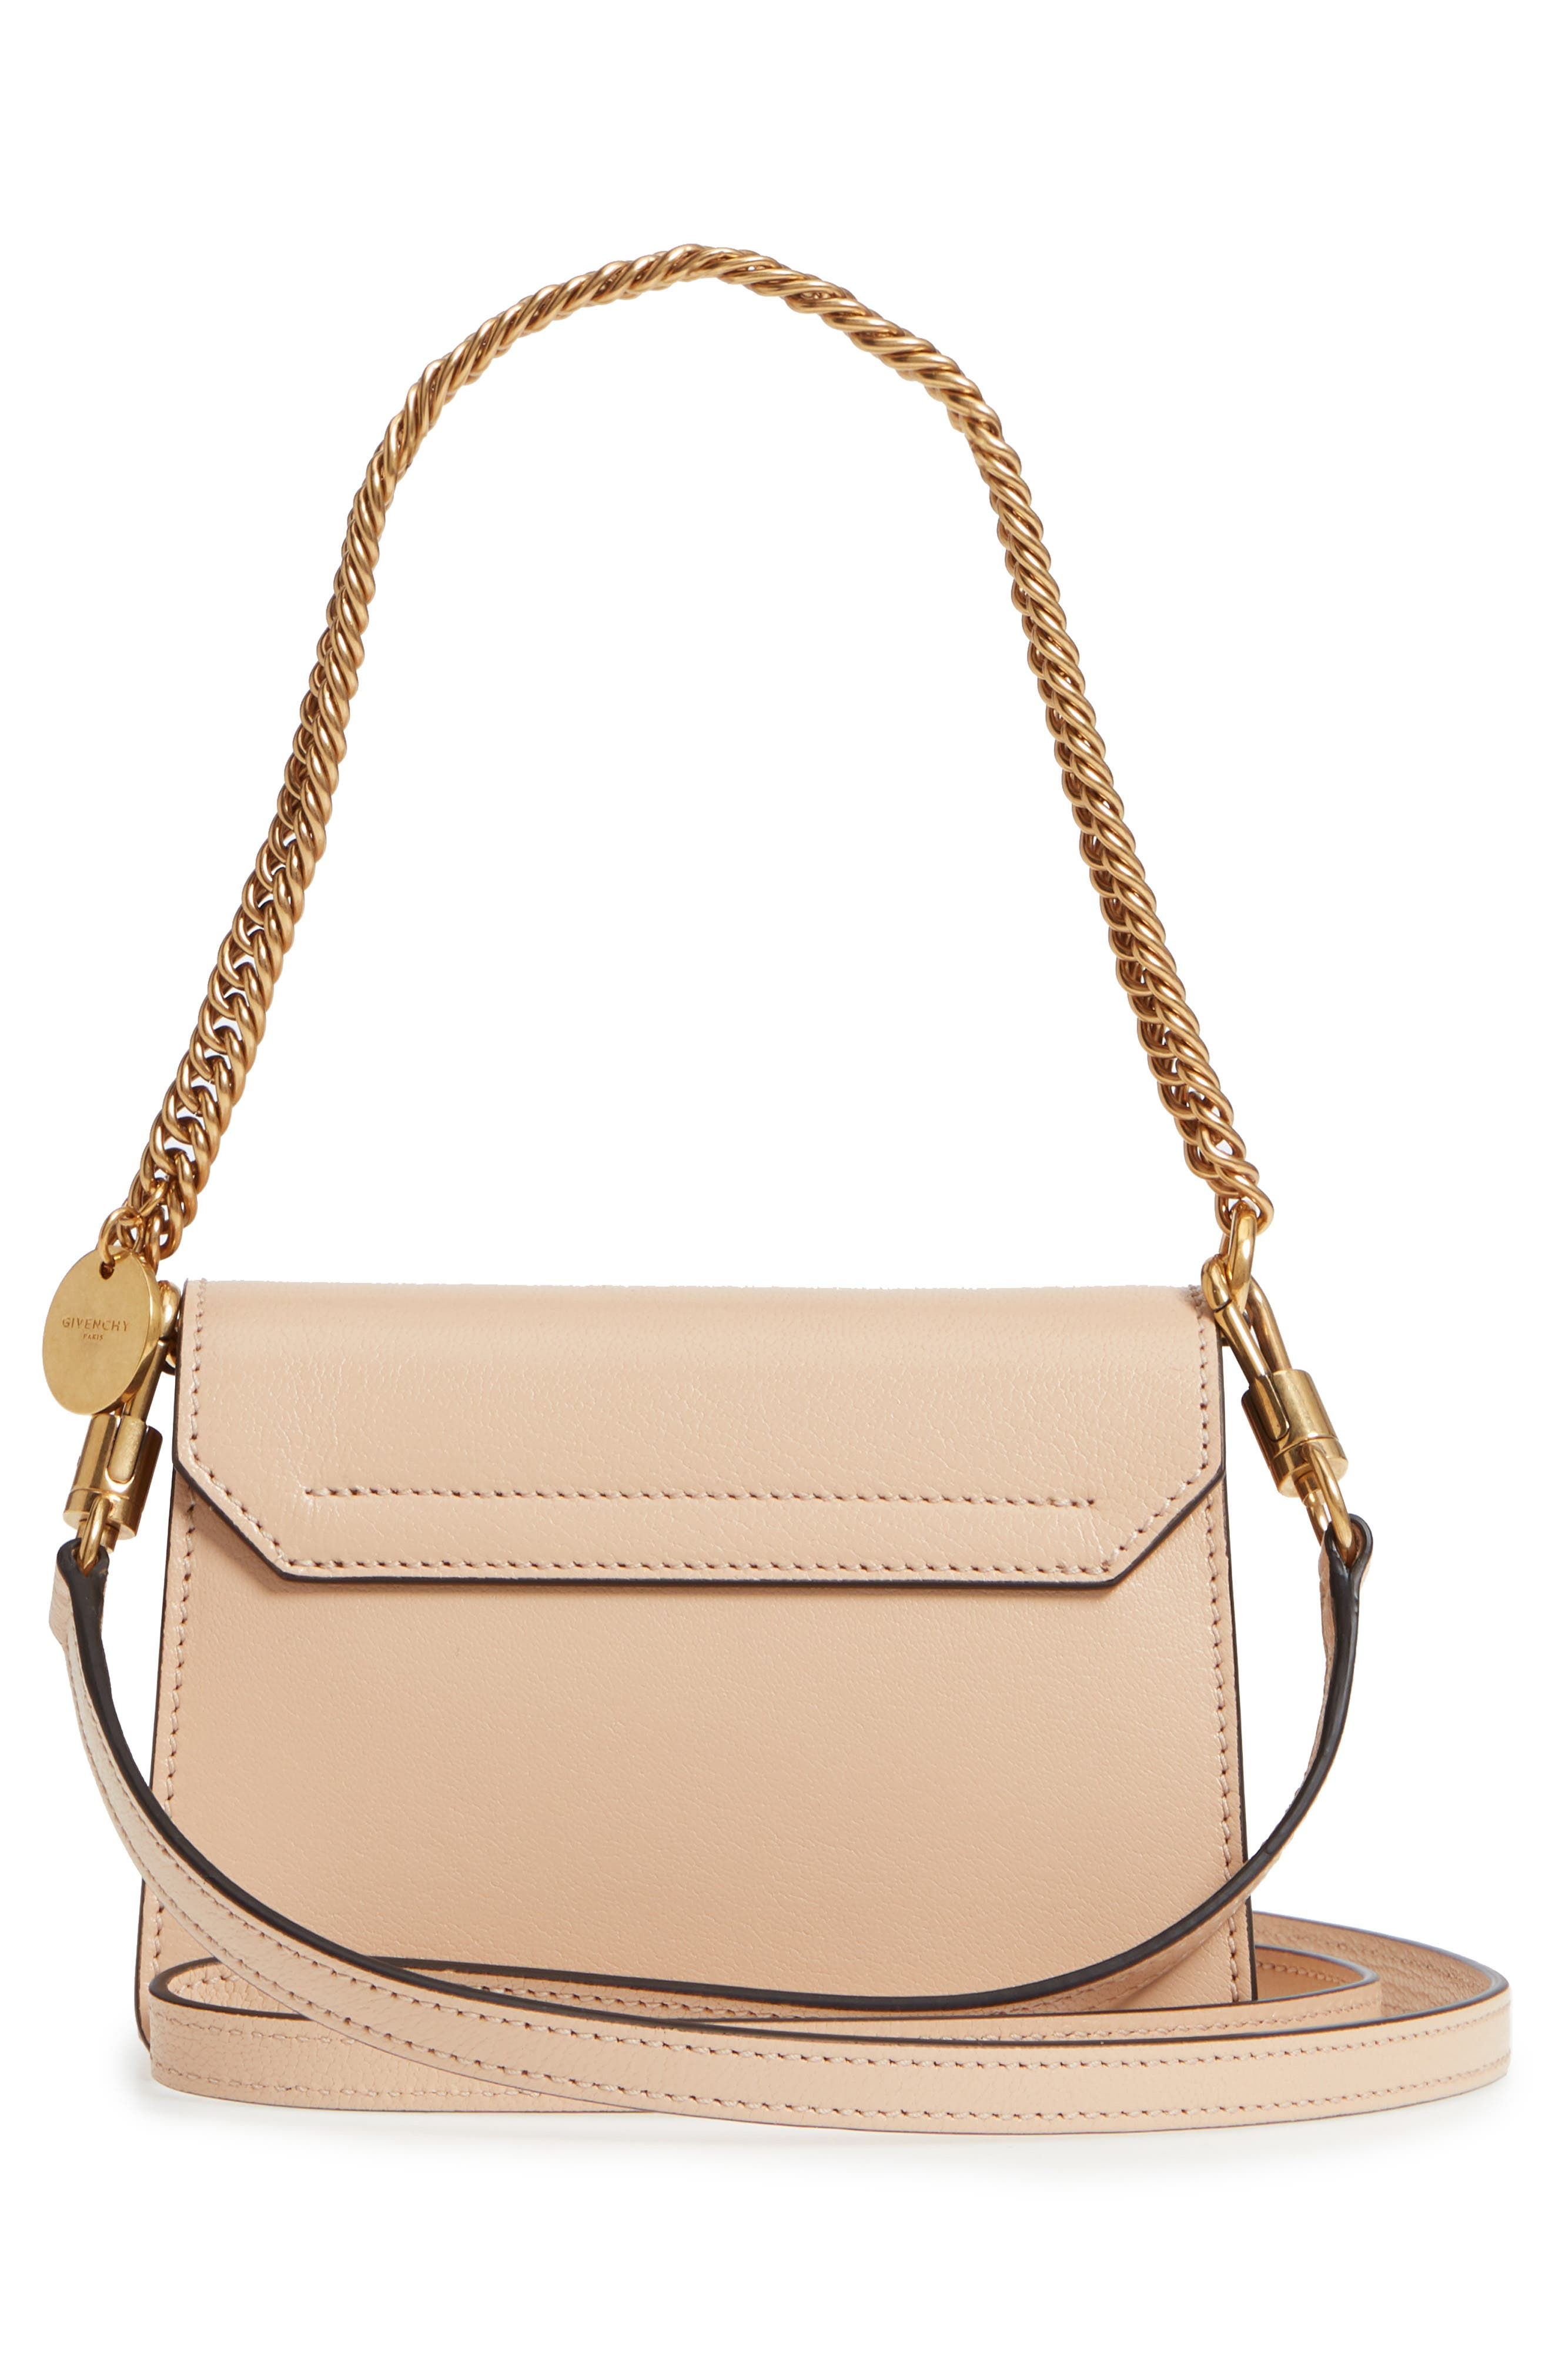 Mini GV3 Leather & Suede Crossbody Bag,                             Alternate thumbnail 3, color,                             NUDE/ LIGHT BEIGE